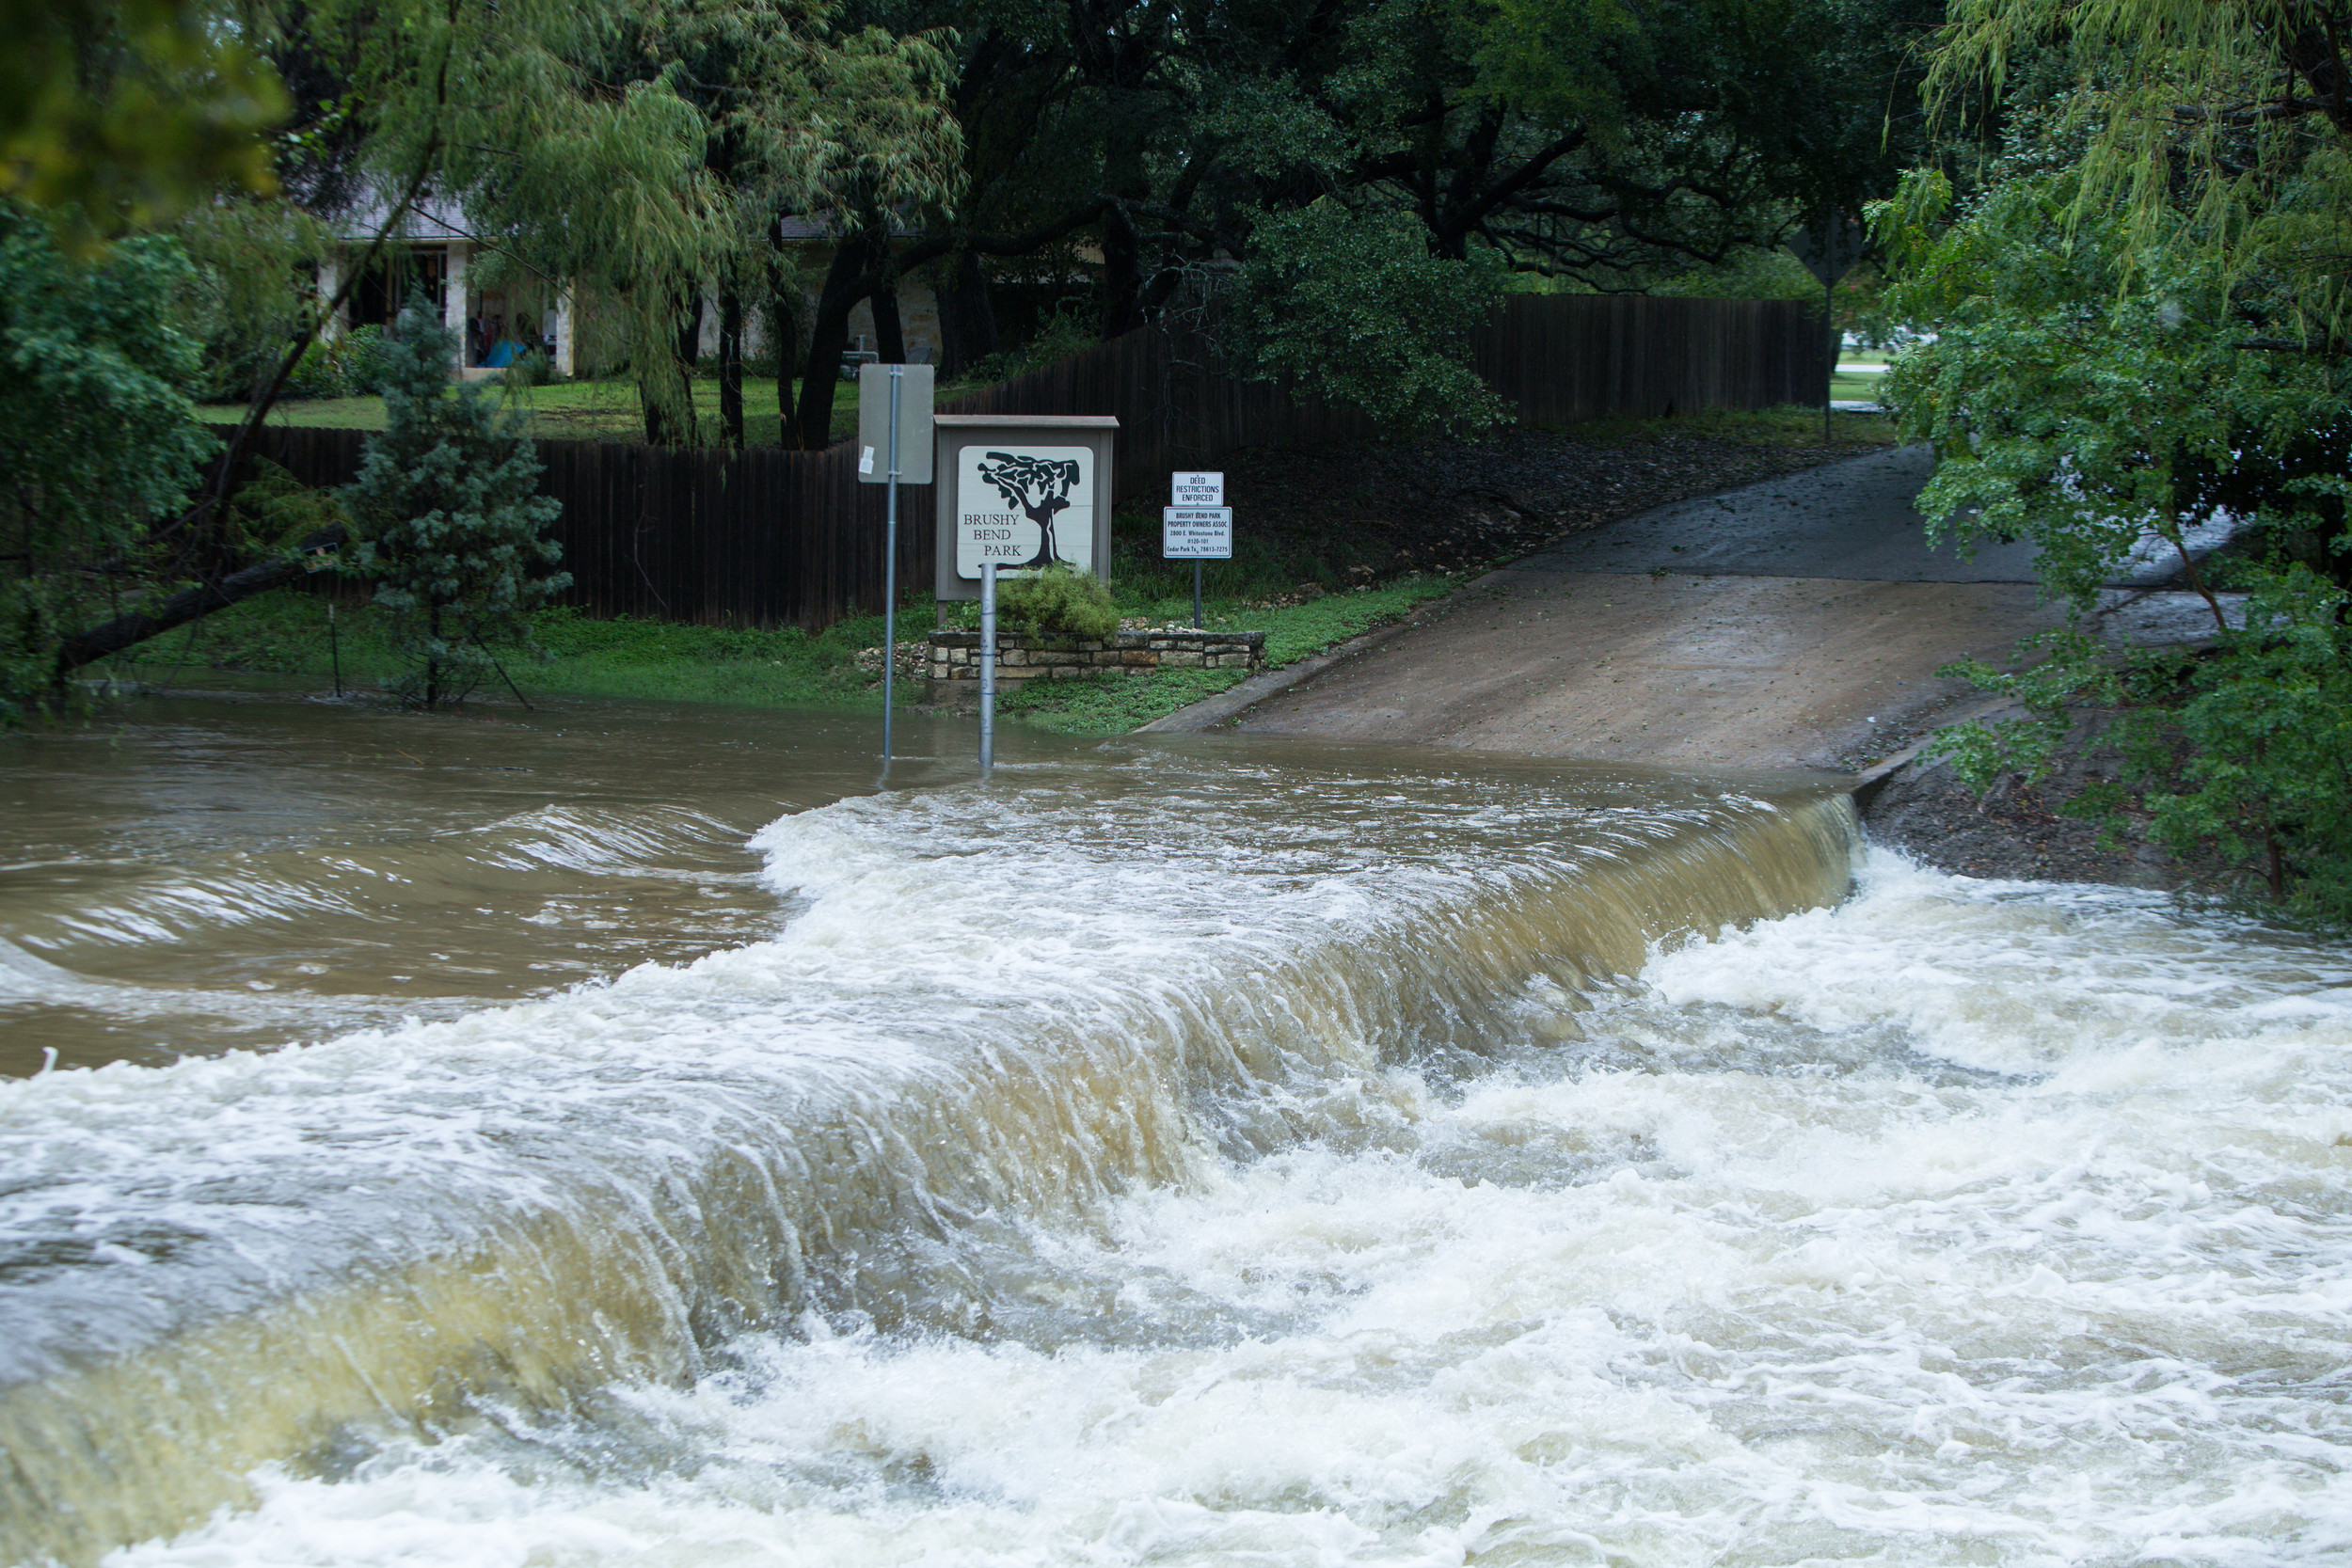 Water from Brushy Creek floods over Brushy Bend Drive in Round Rock on Sunday afternoon, Aug. 27.